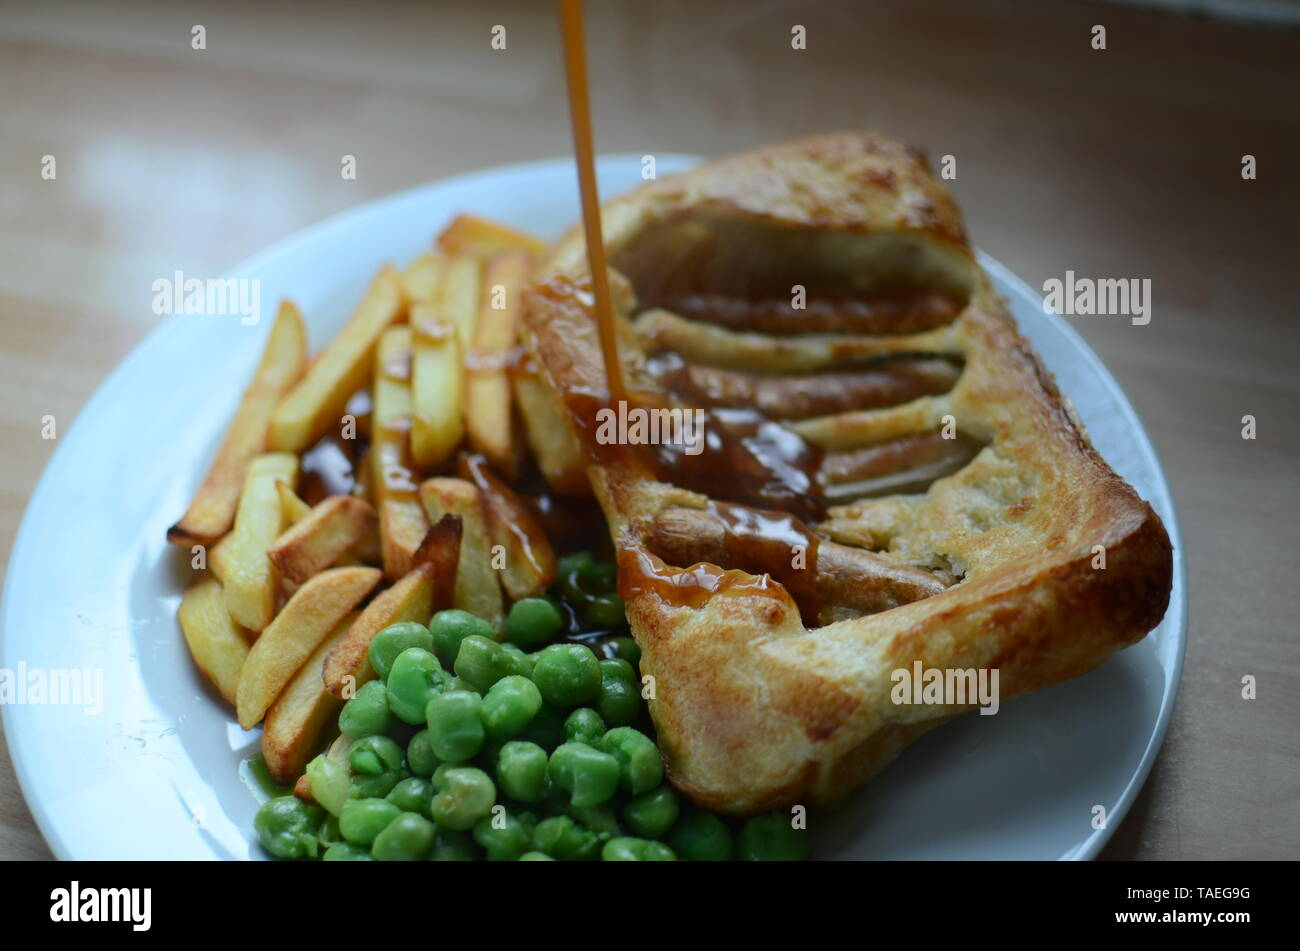 home cooked sunday lunch, toad in the hole - Stock Image